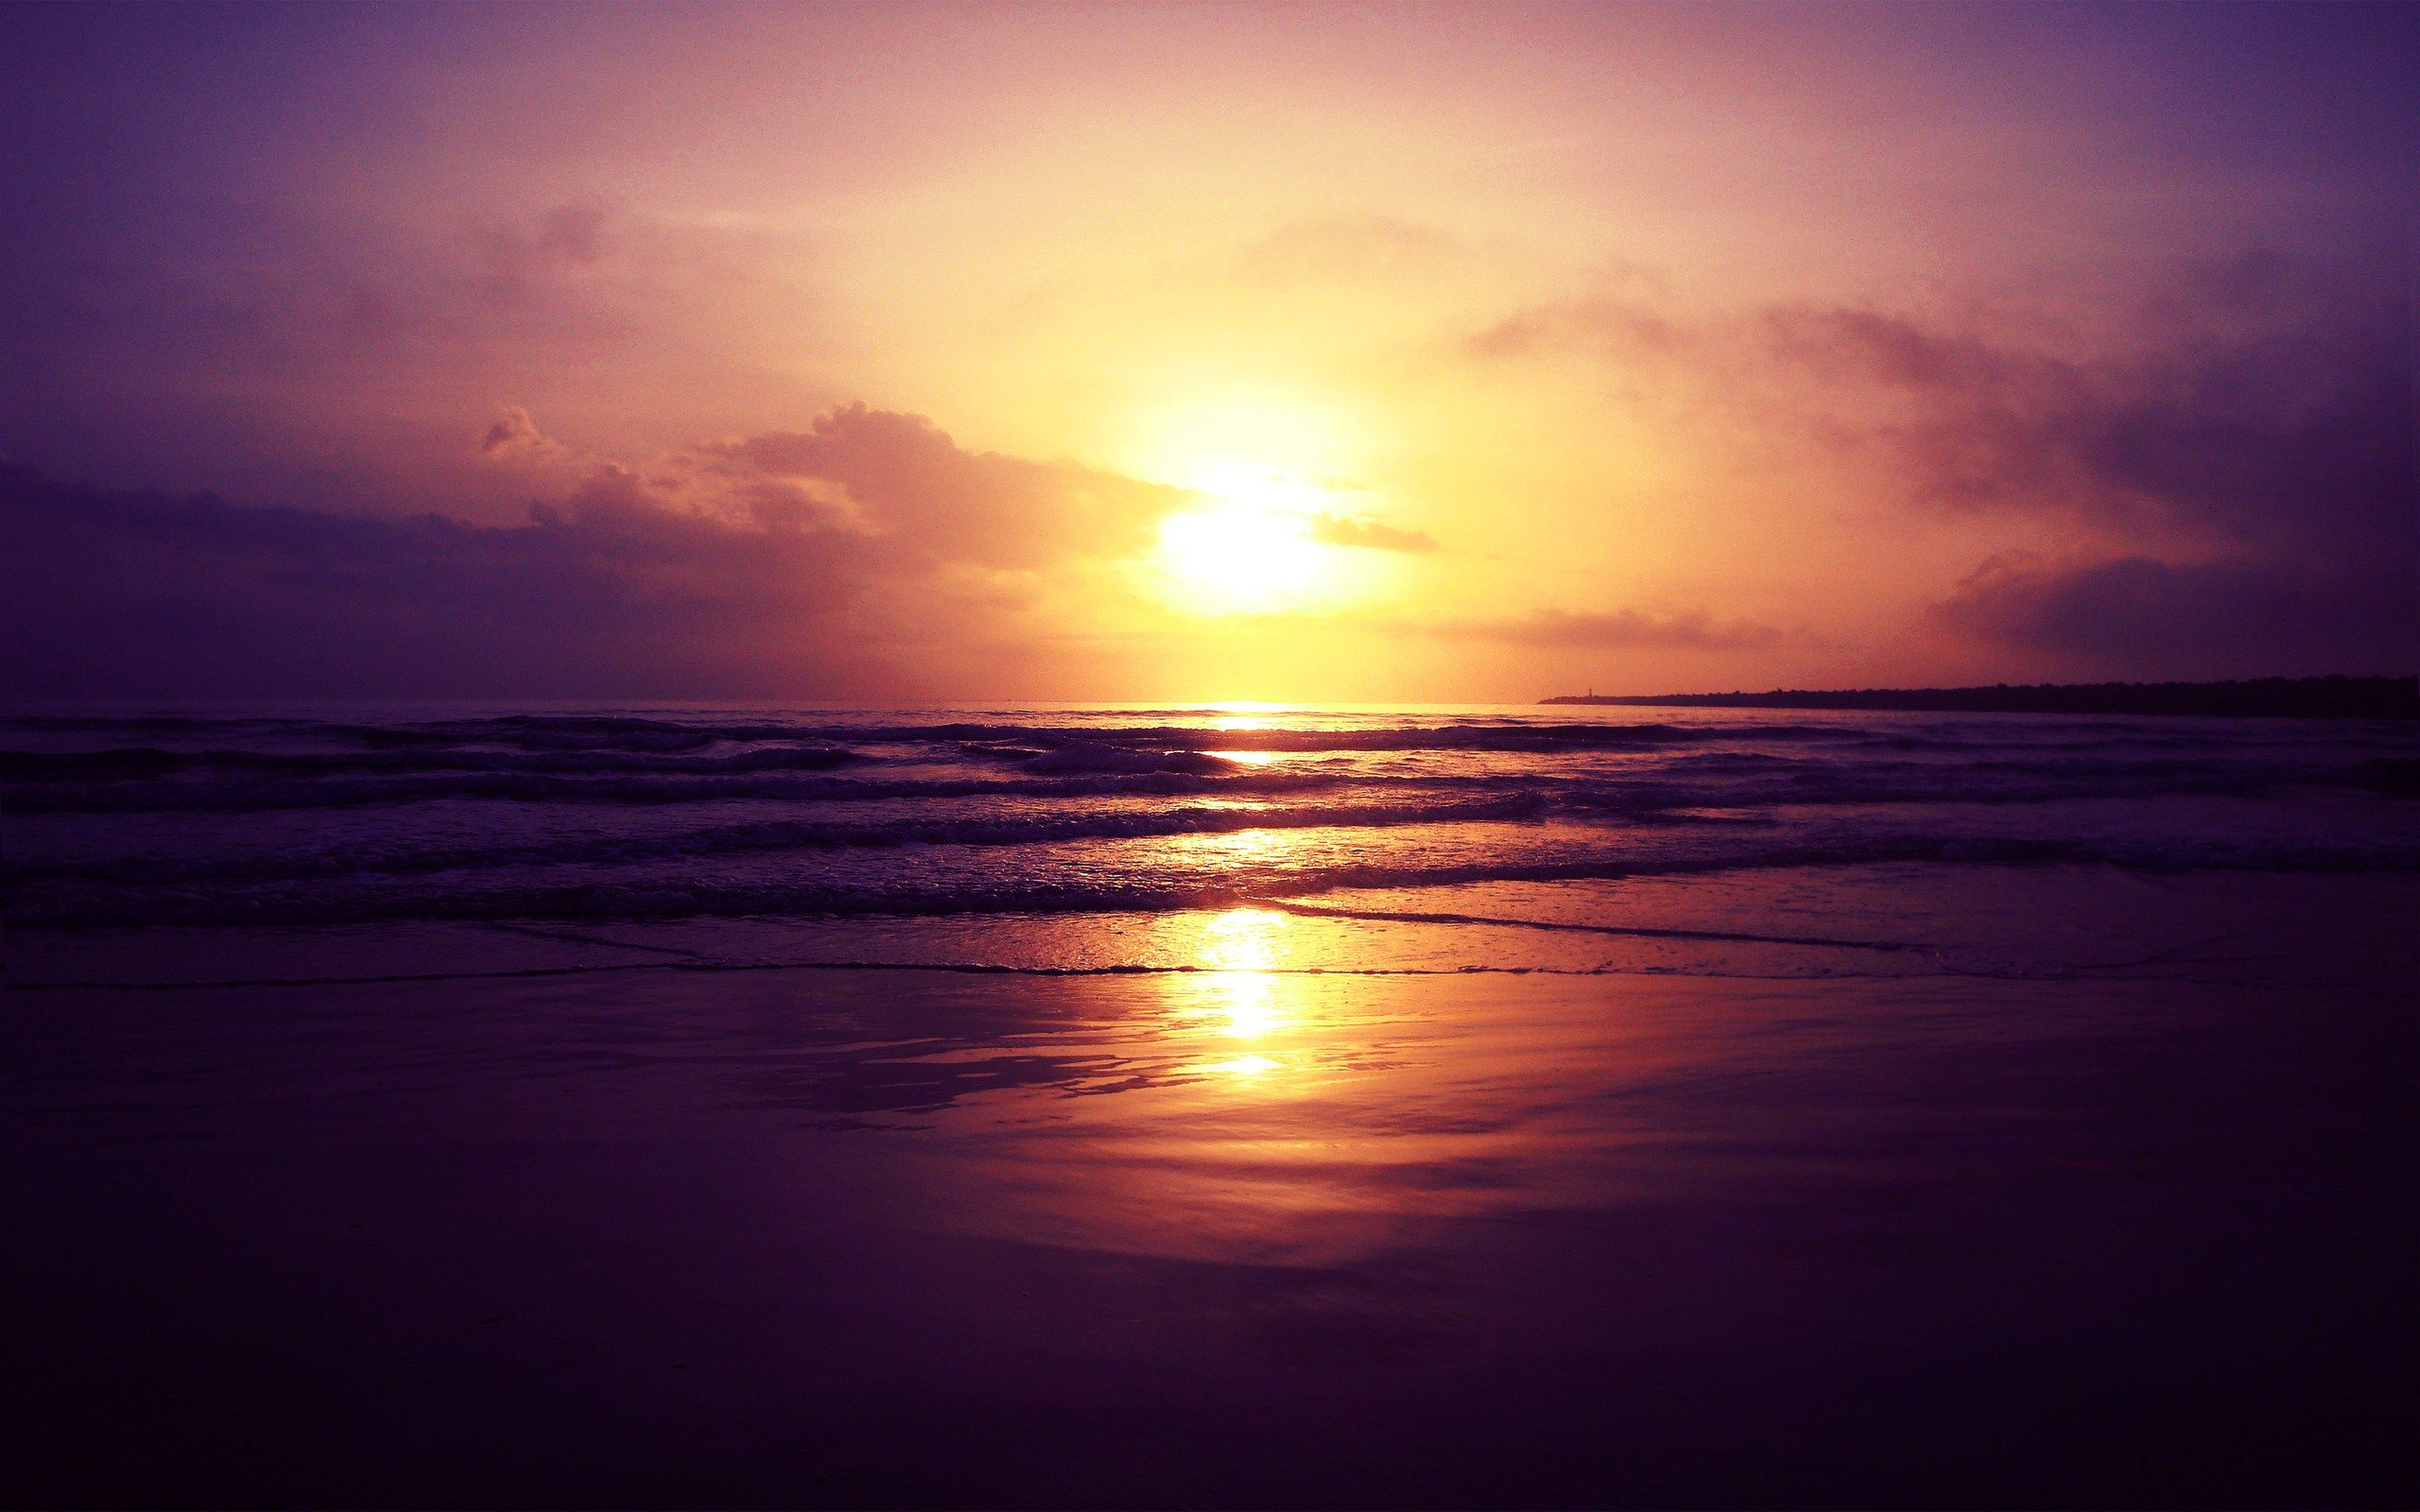 image for beach sunset tumblr desktop wallpaper